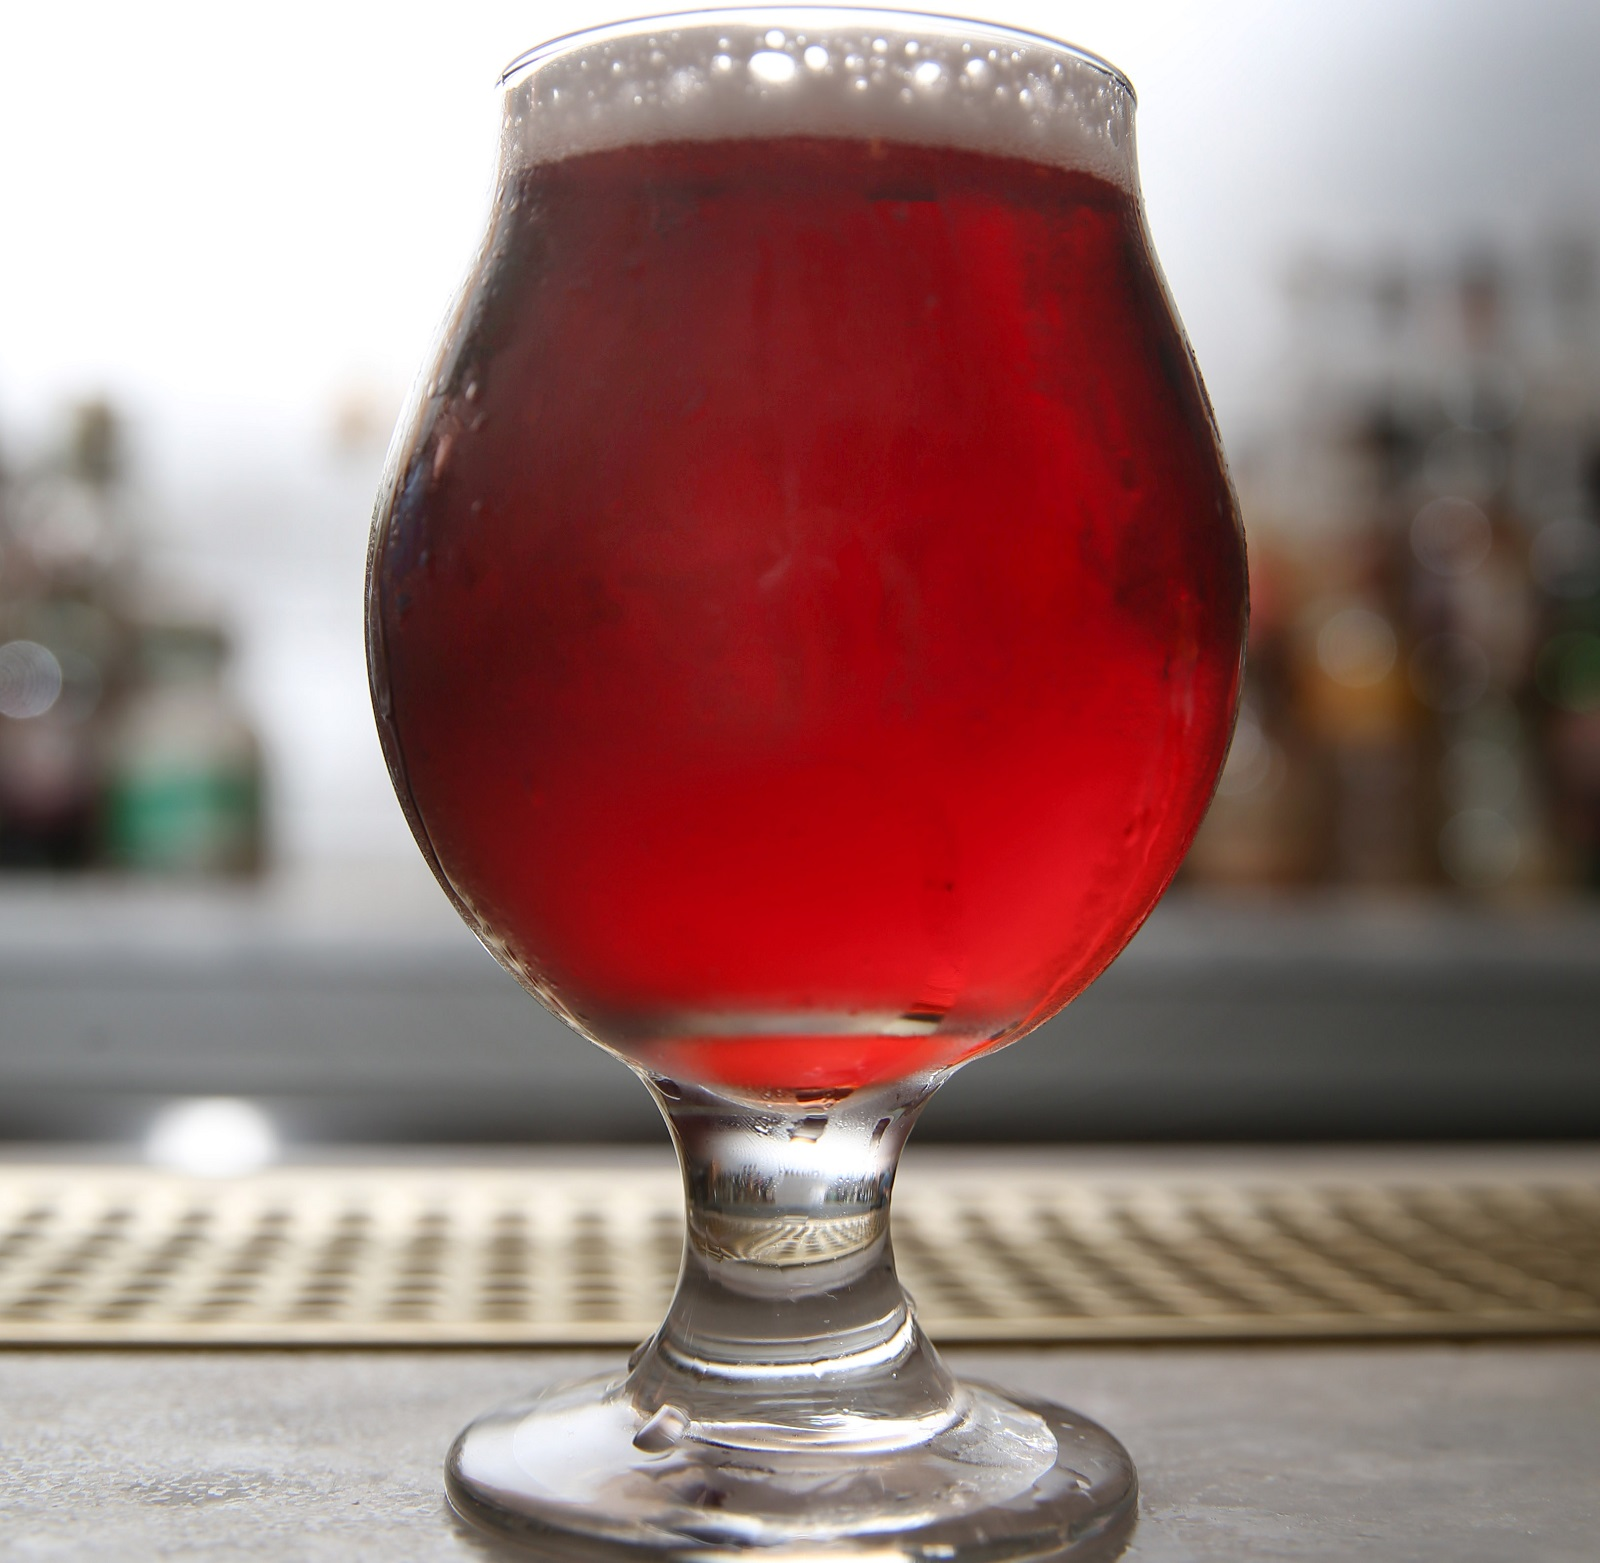 The Steampunk cherry cider, made by Leonard Oakes Estate Winery, is available at the Grange. (Sharon Cantillon/Buffalo News)